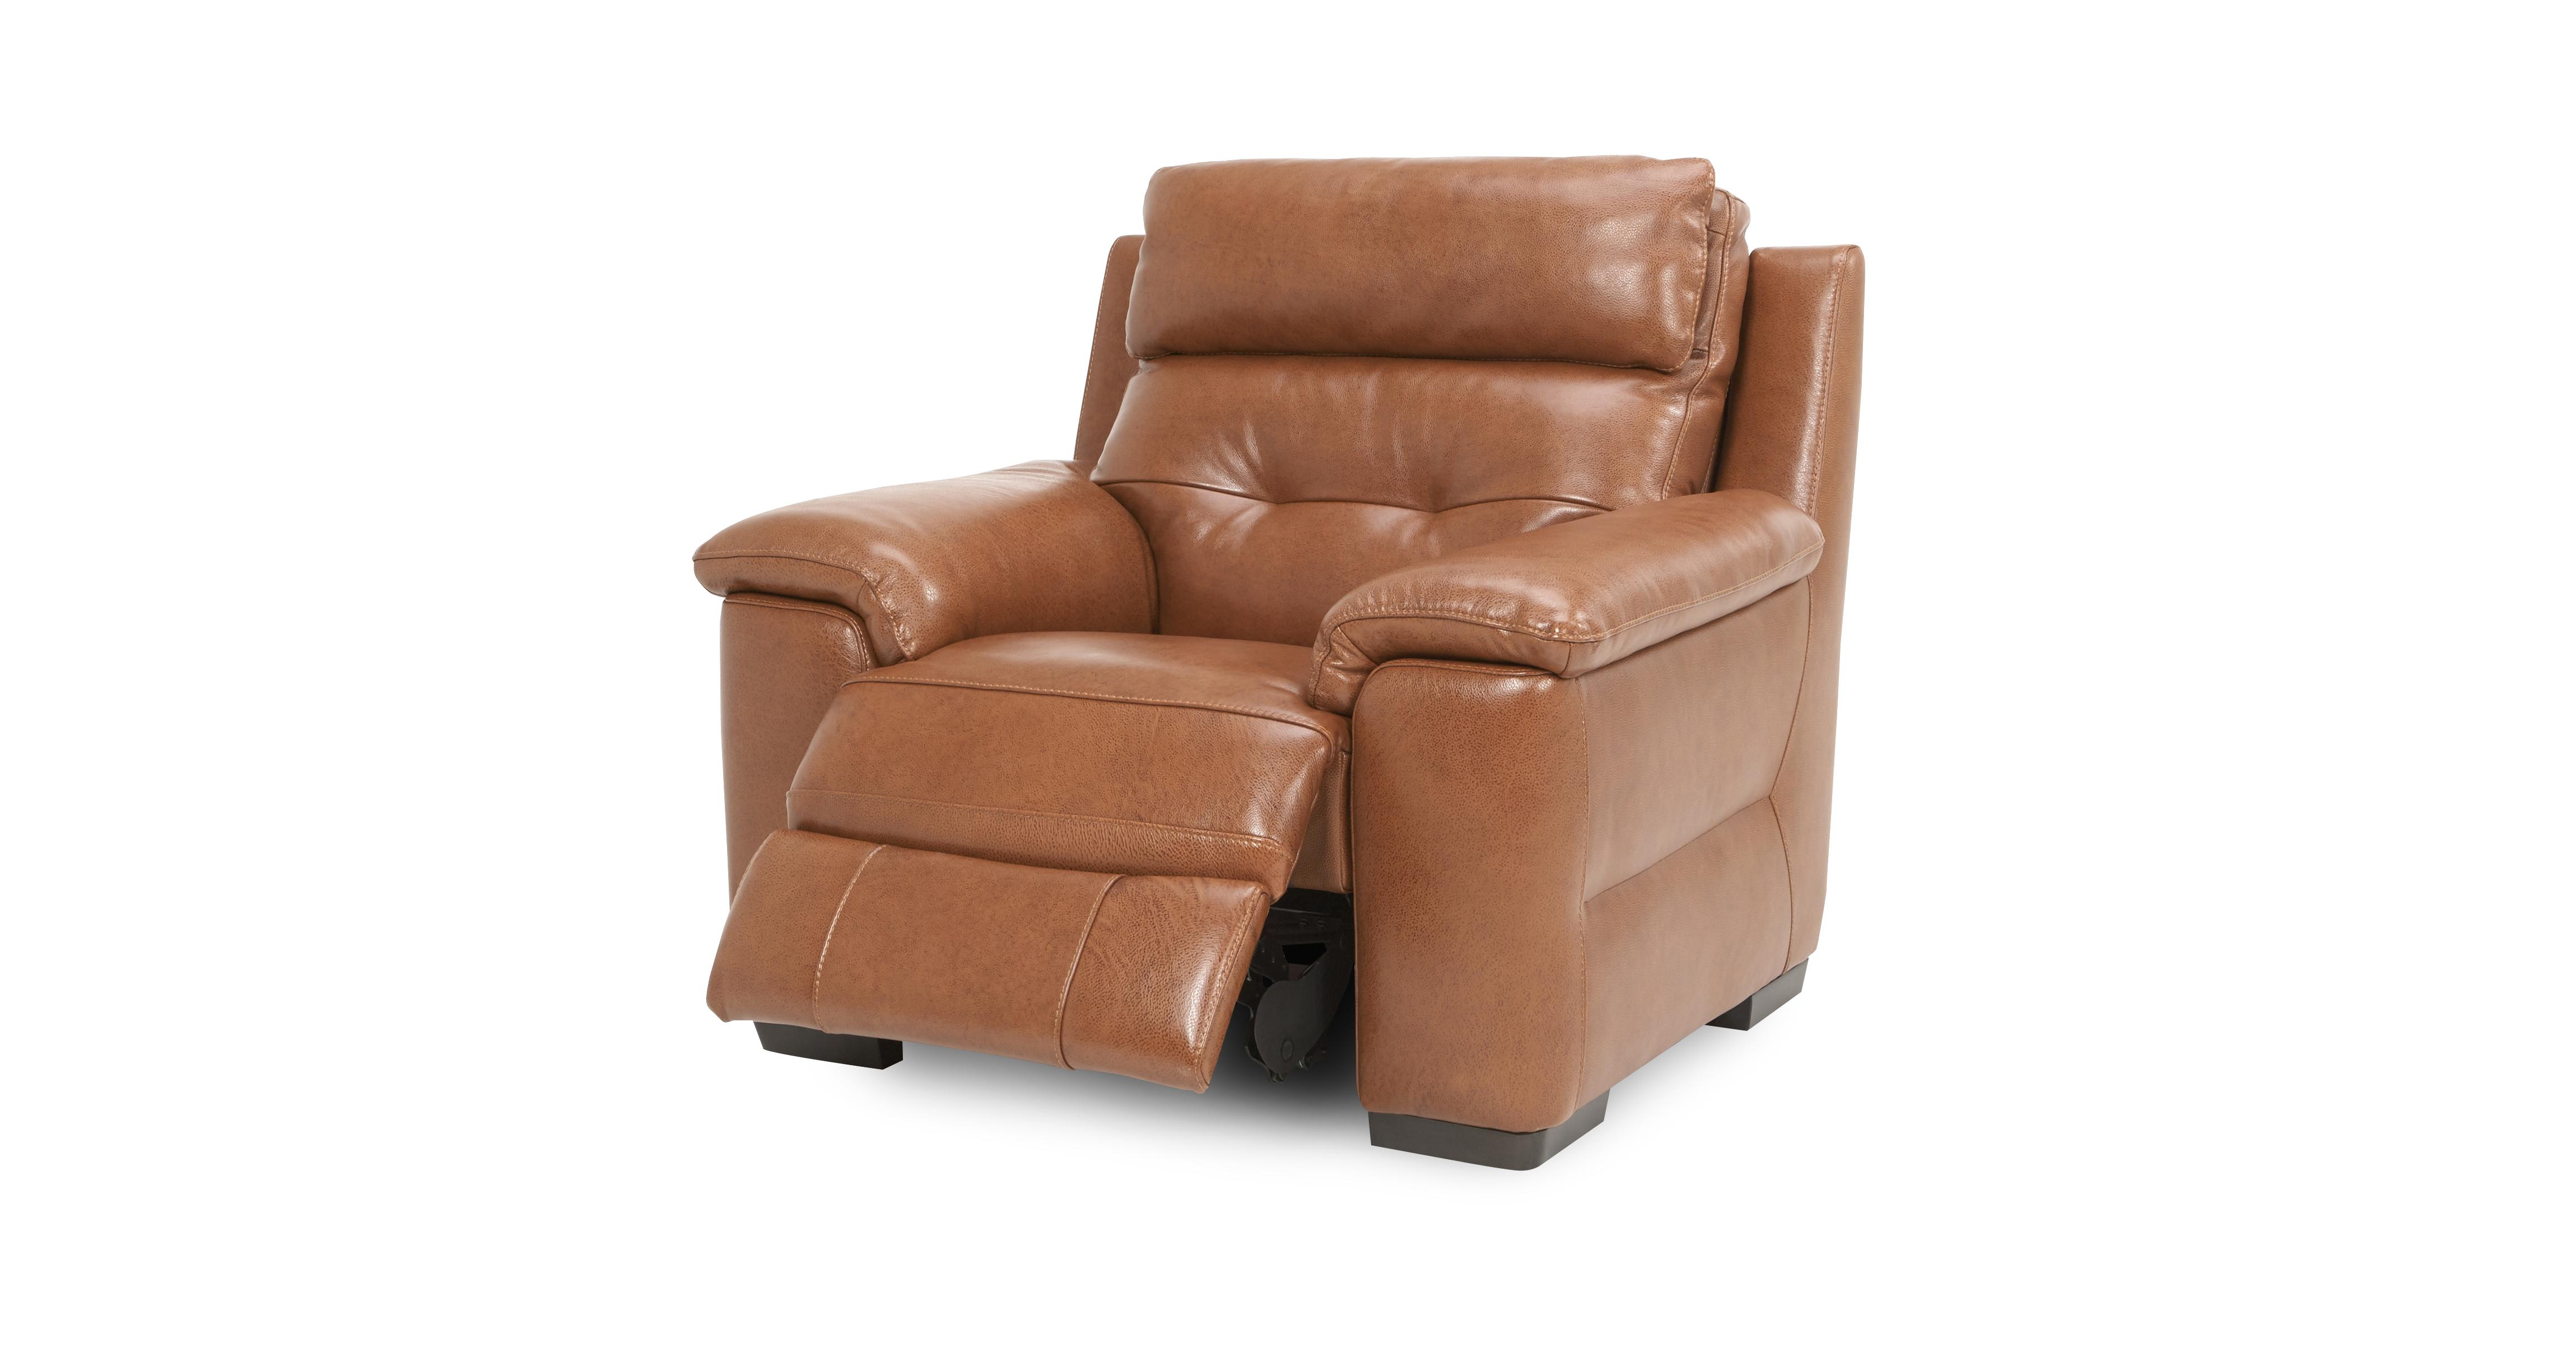 Bowness Electric Recliner Chair Brazil With Leather Look